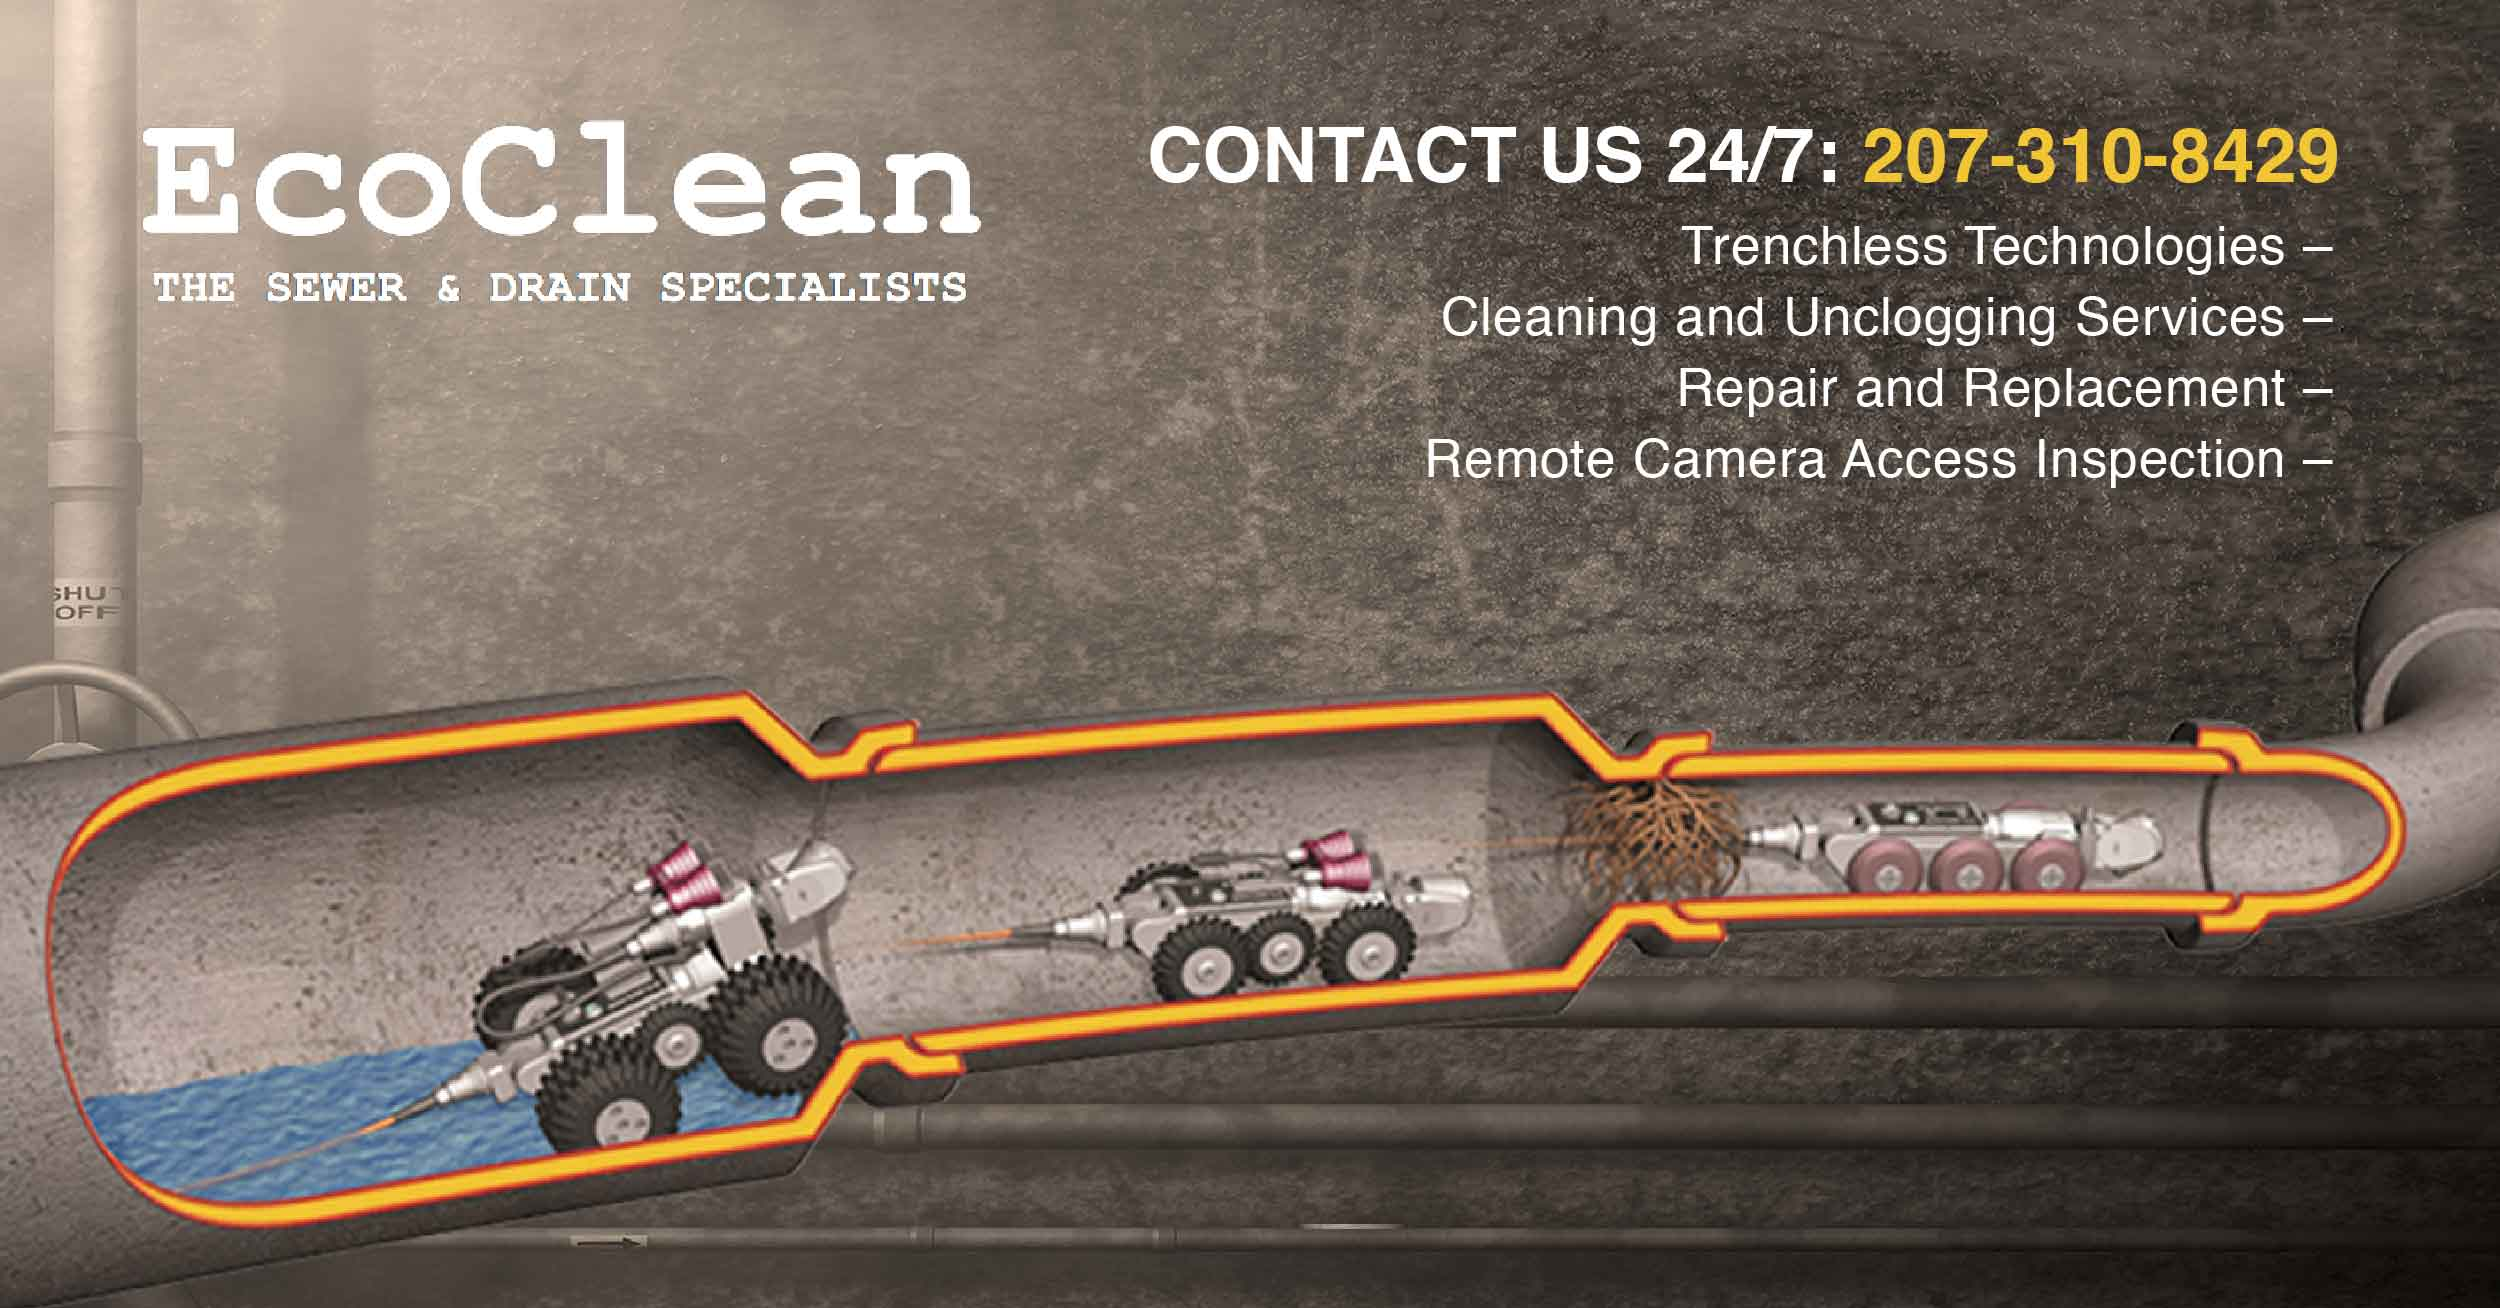 EcoClean | The Sewer & Drain Specialists